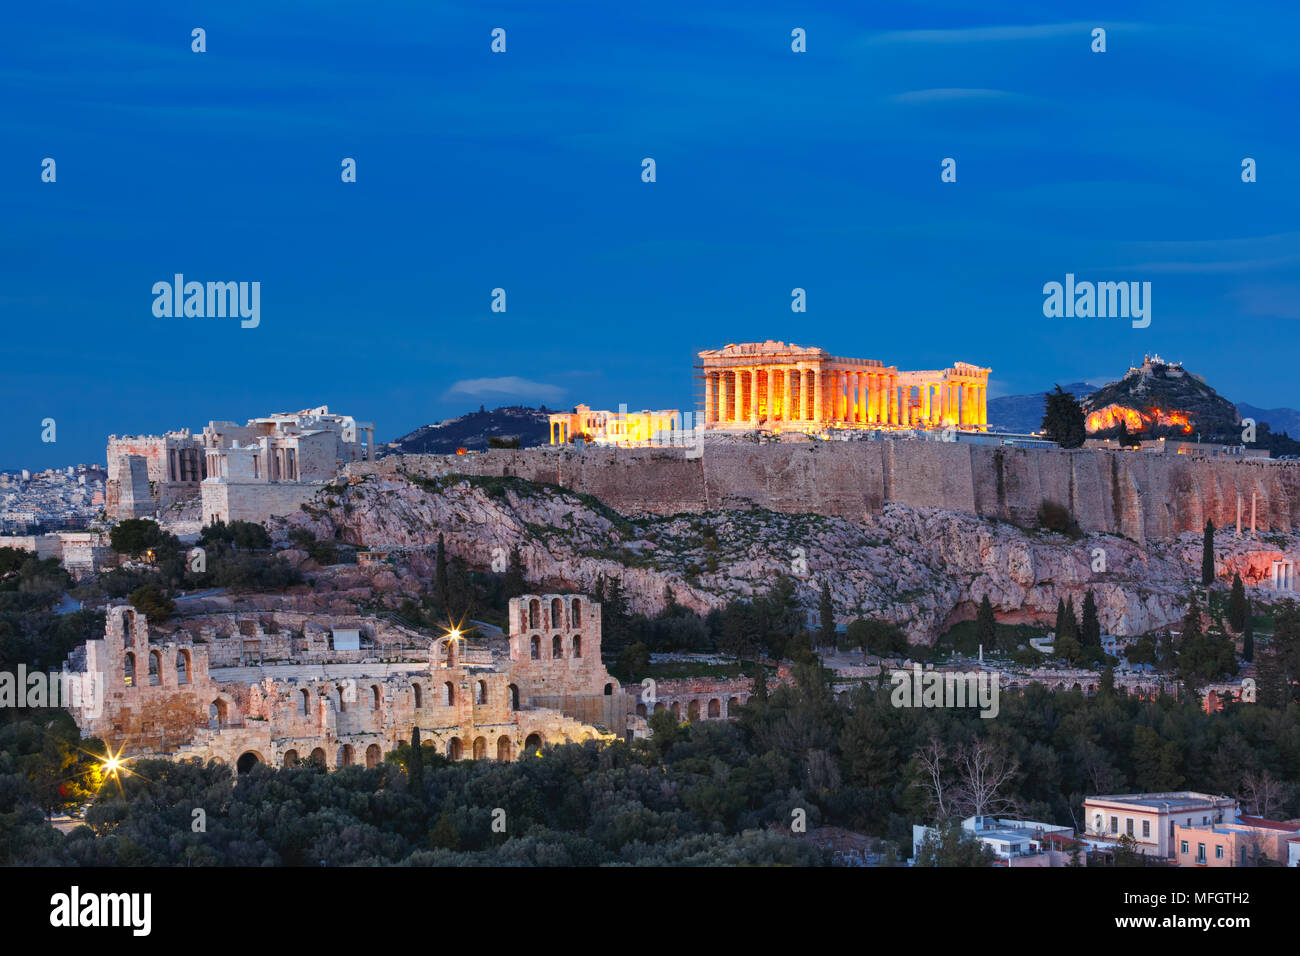 Acropolis Hill and Parthenon in Athens, Greece - Stock Image